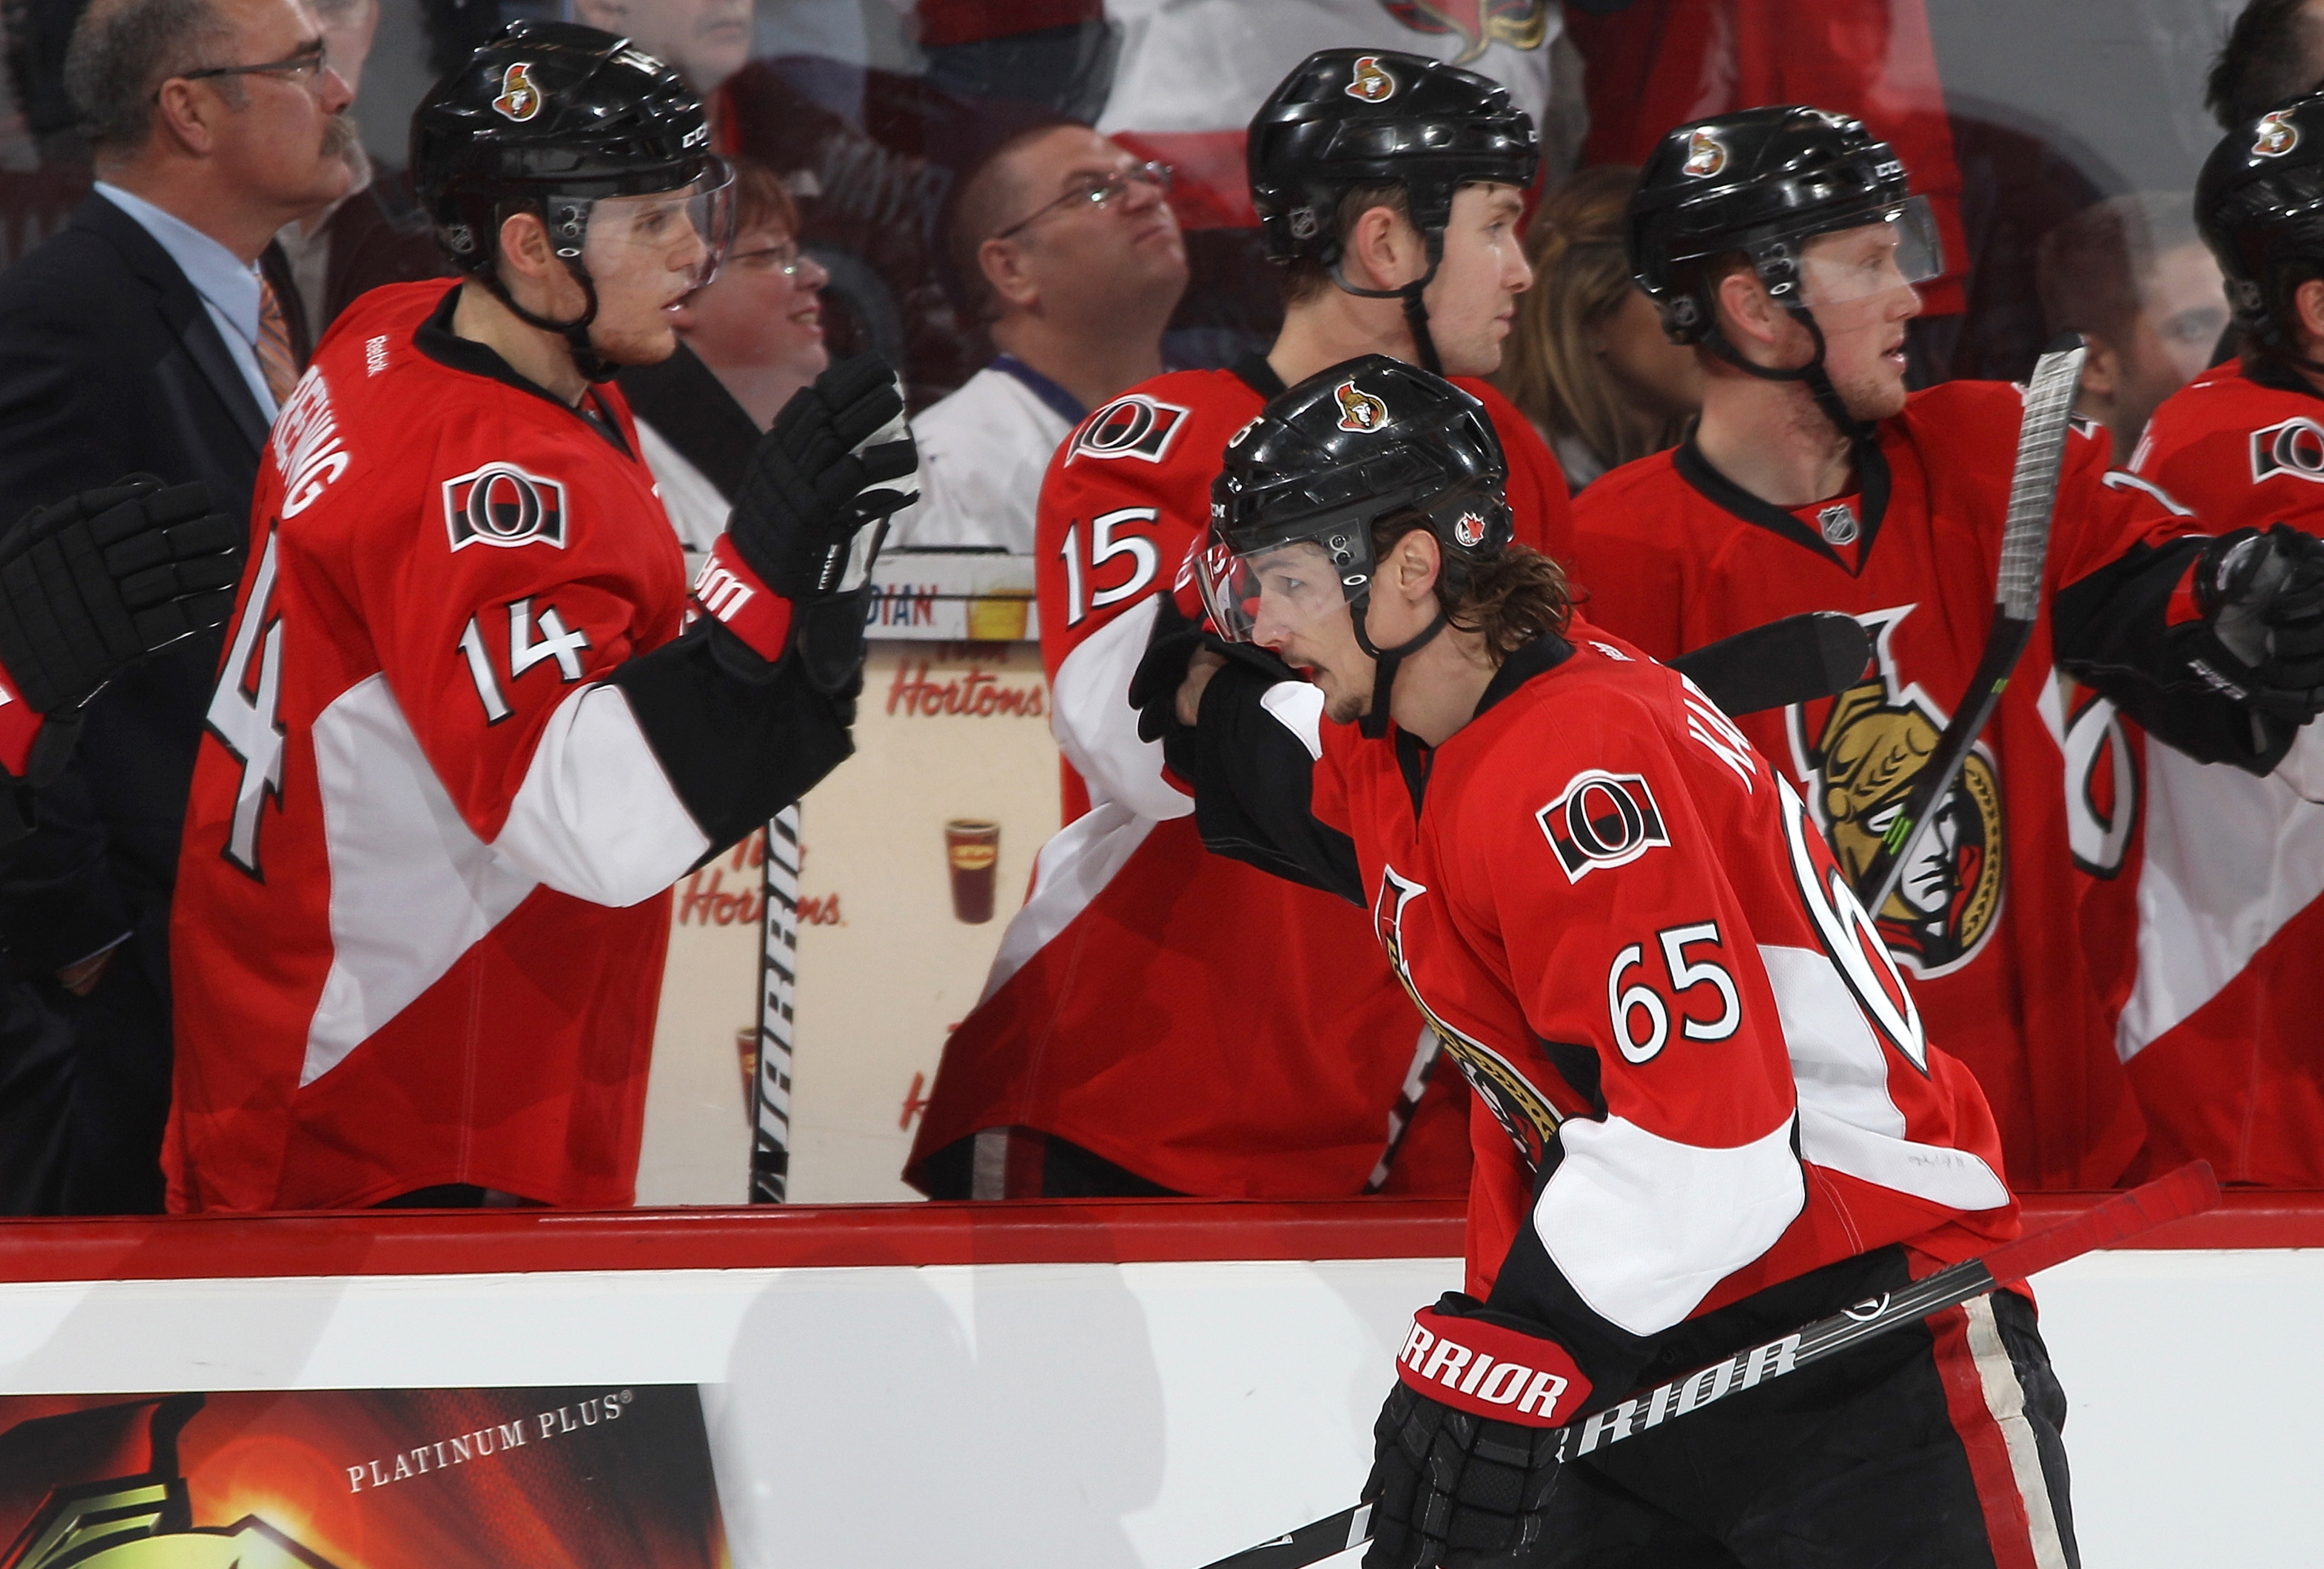 It's part of Erik Karlsson's contract that you can't look him in the eye.